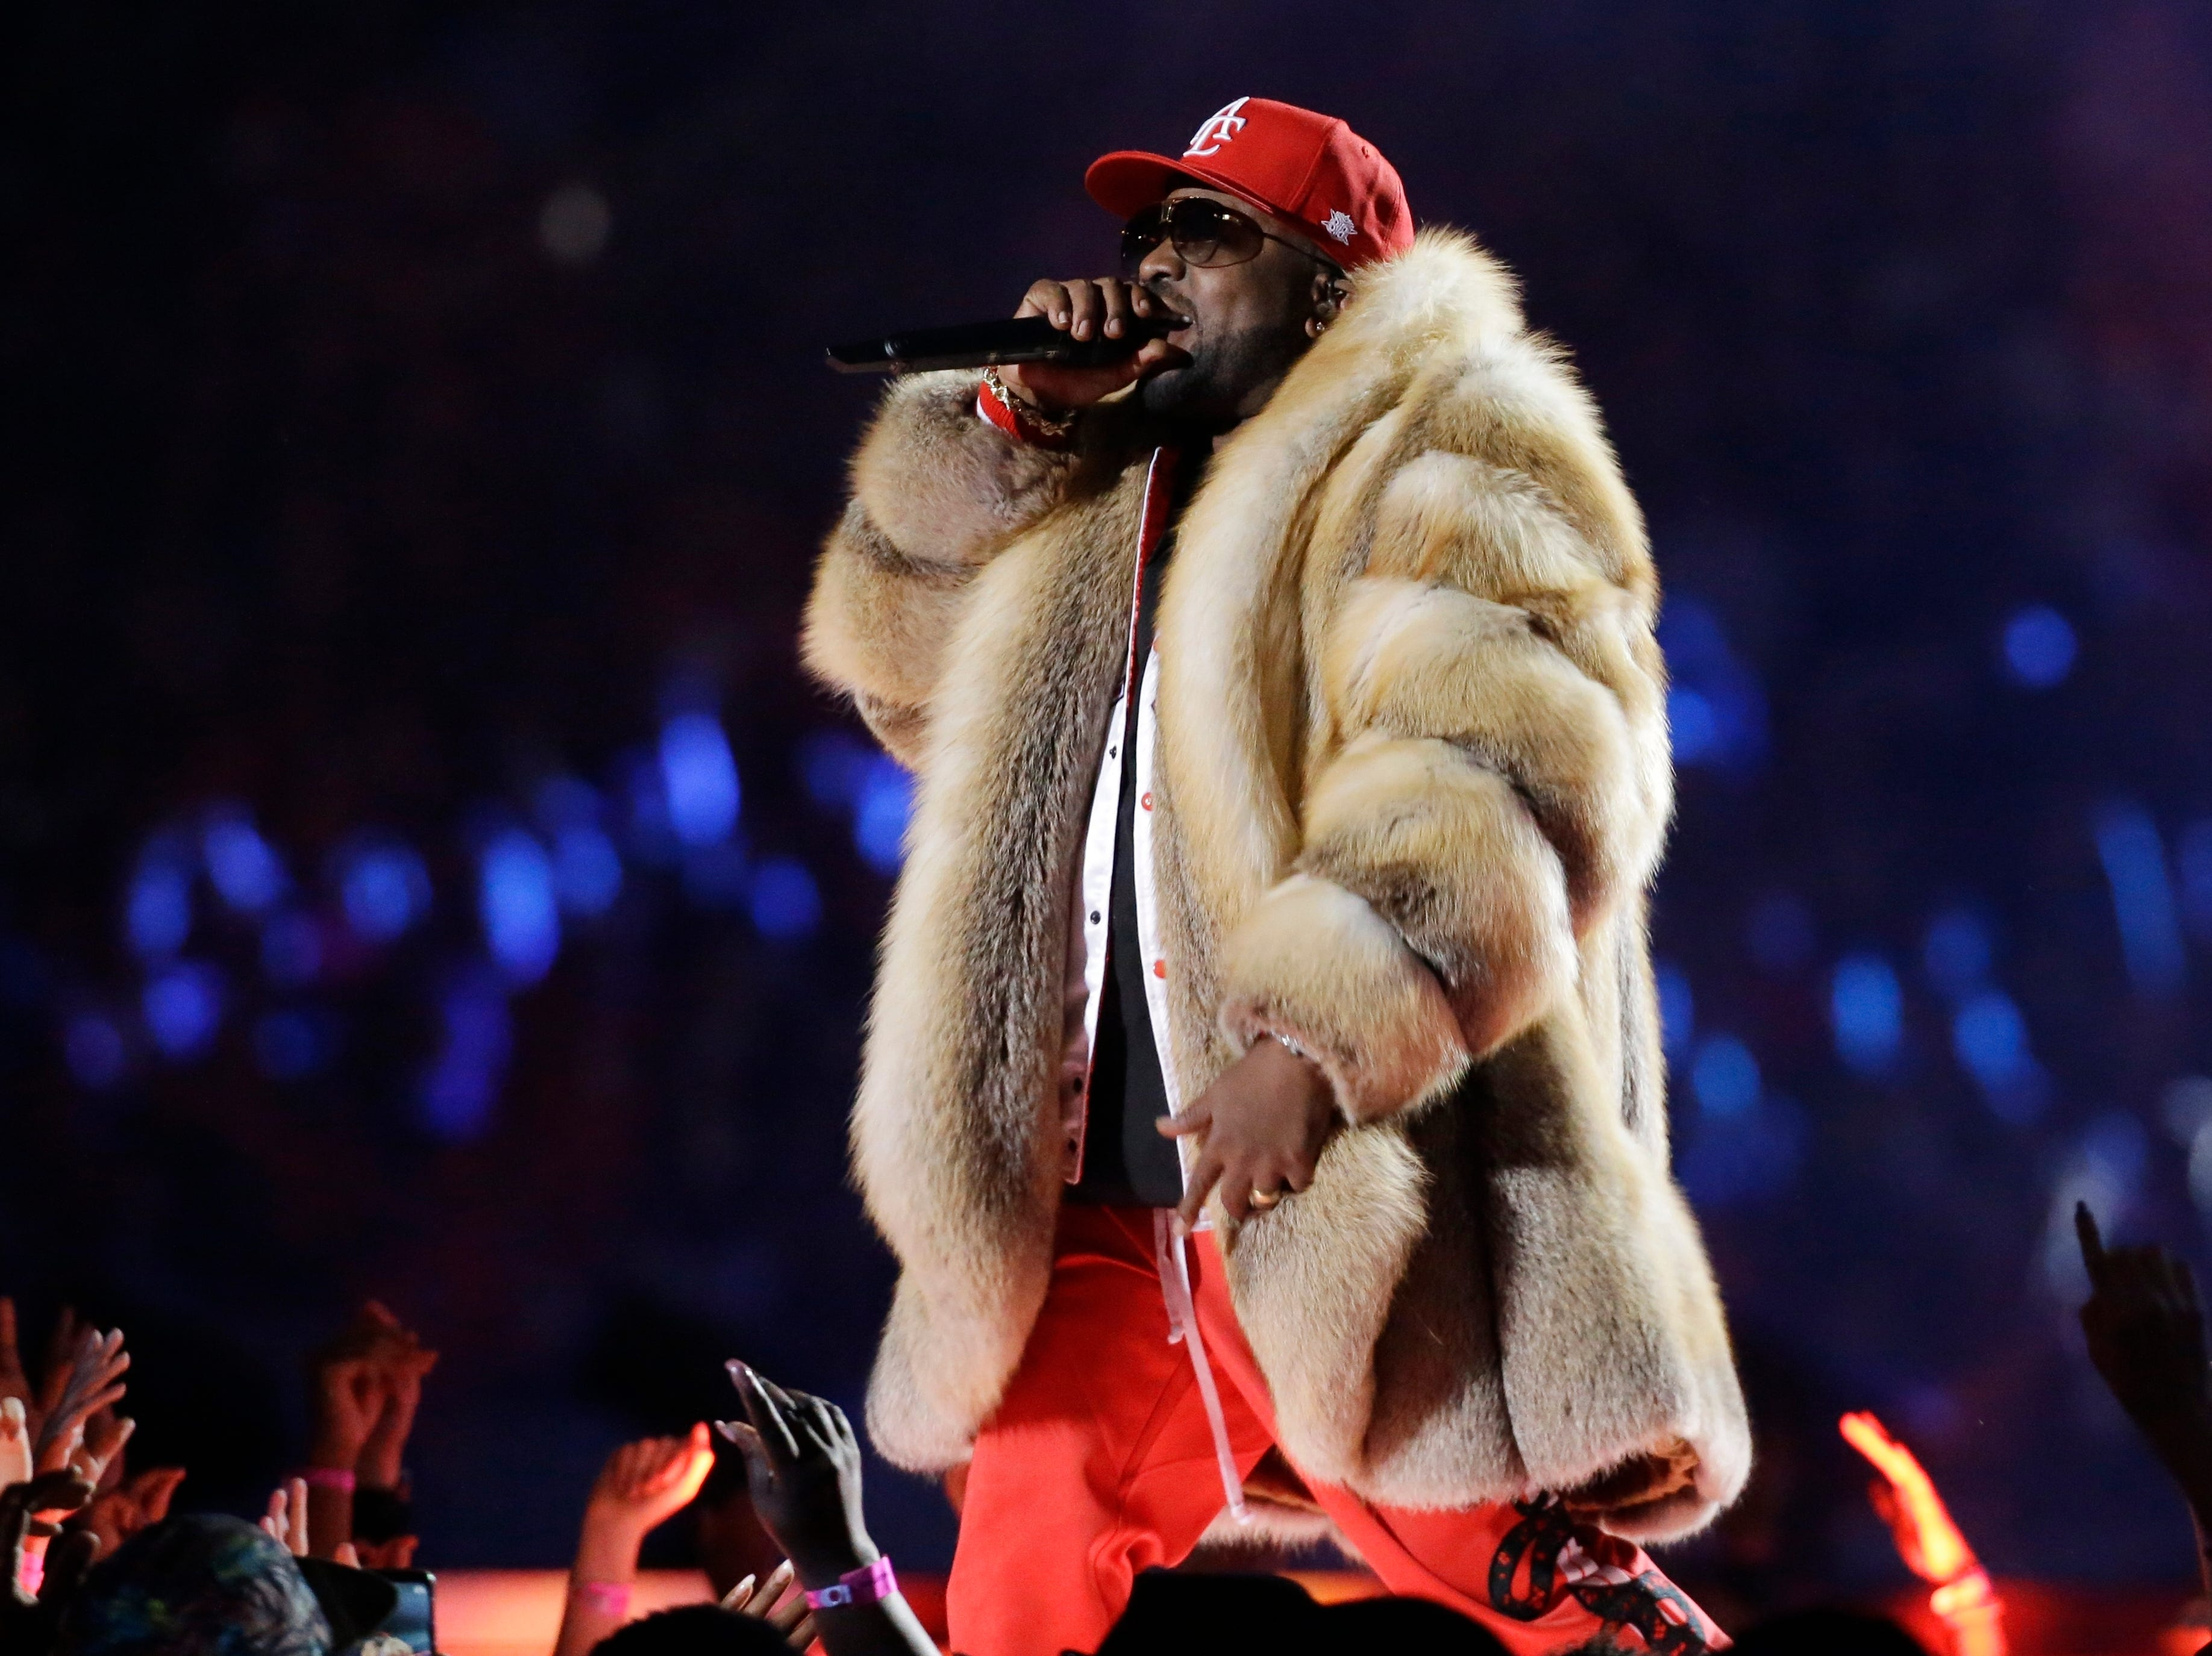 Big Boi performs during halftime.